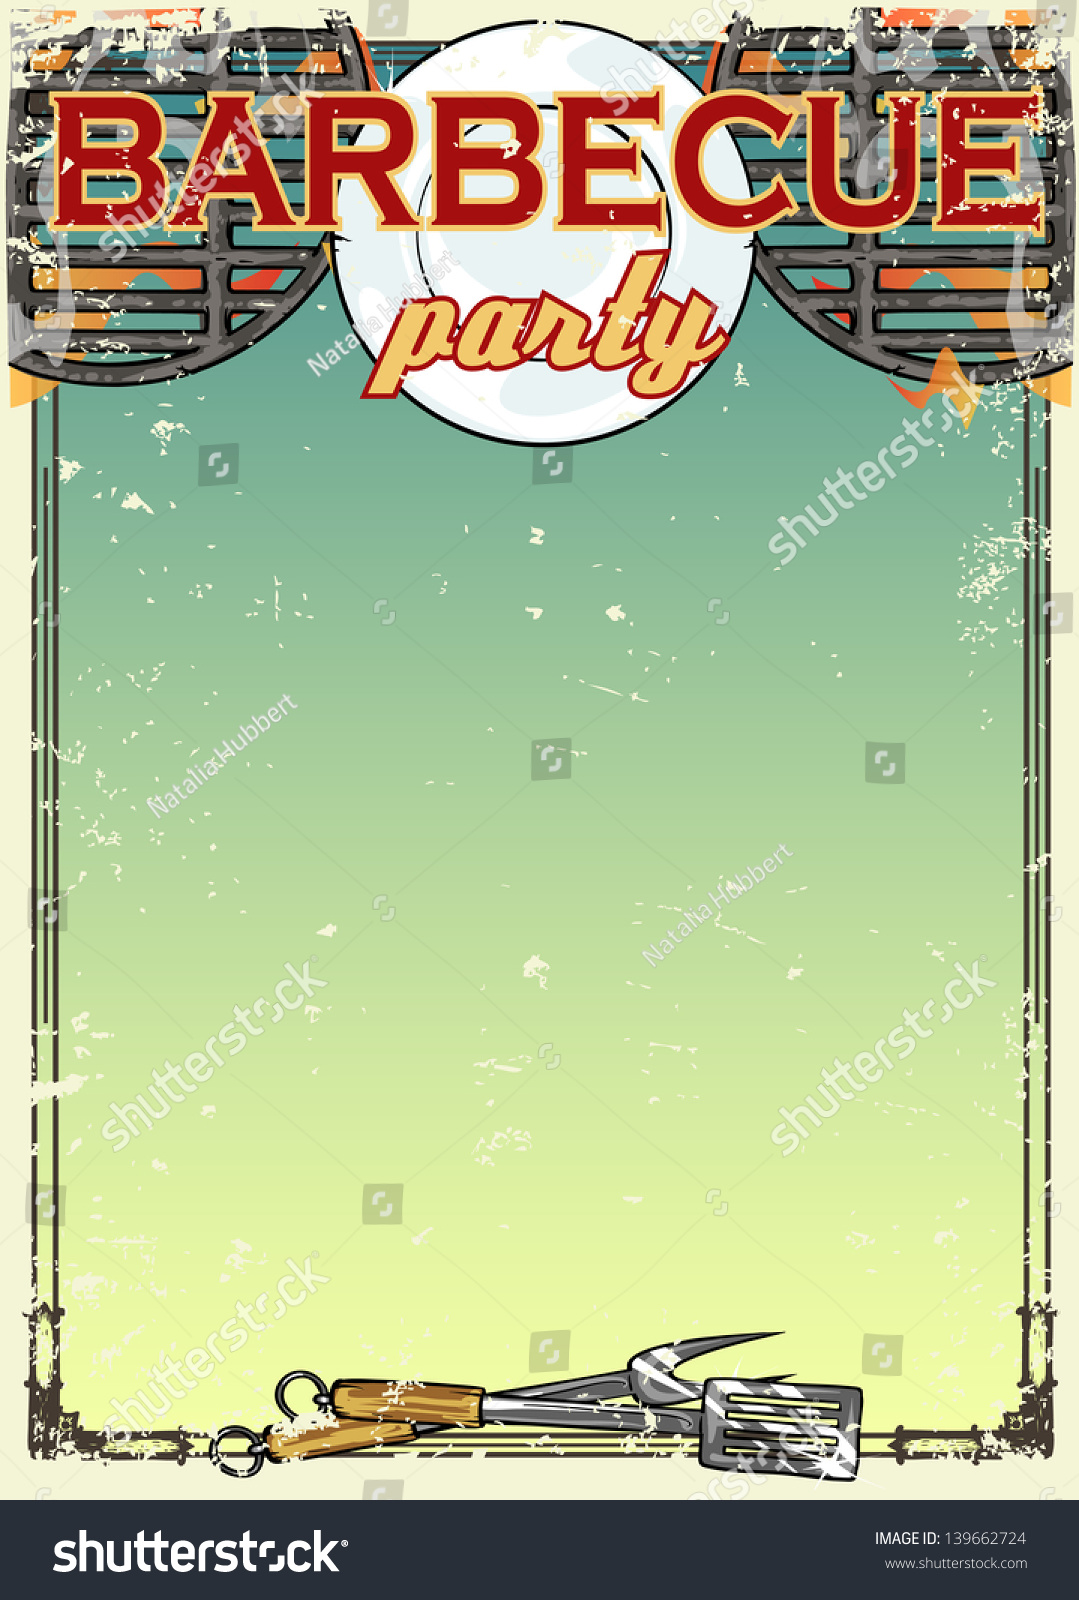 Barbecue Party Invitation With Space For Text, Bbq Grill ...